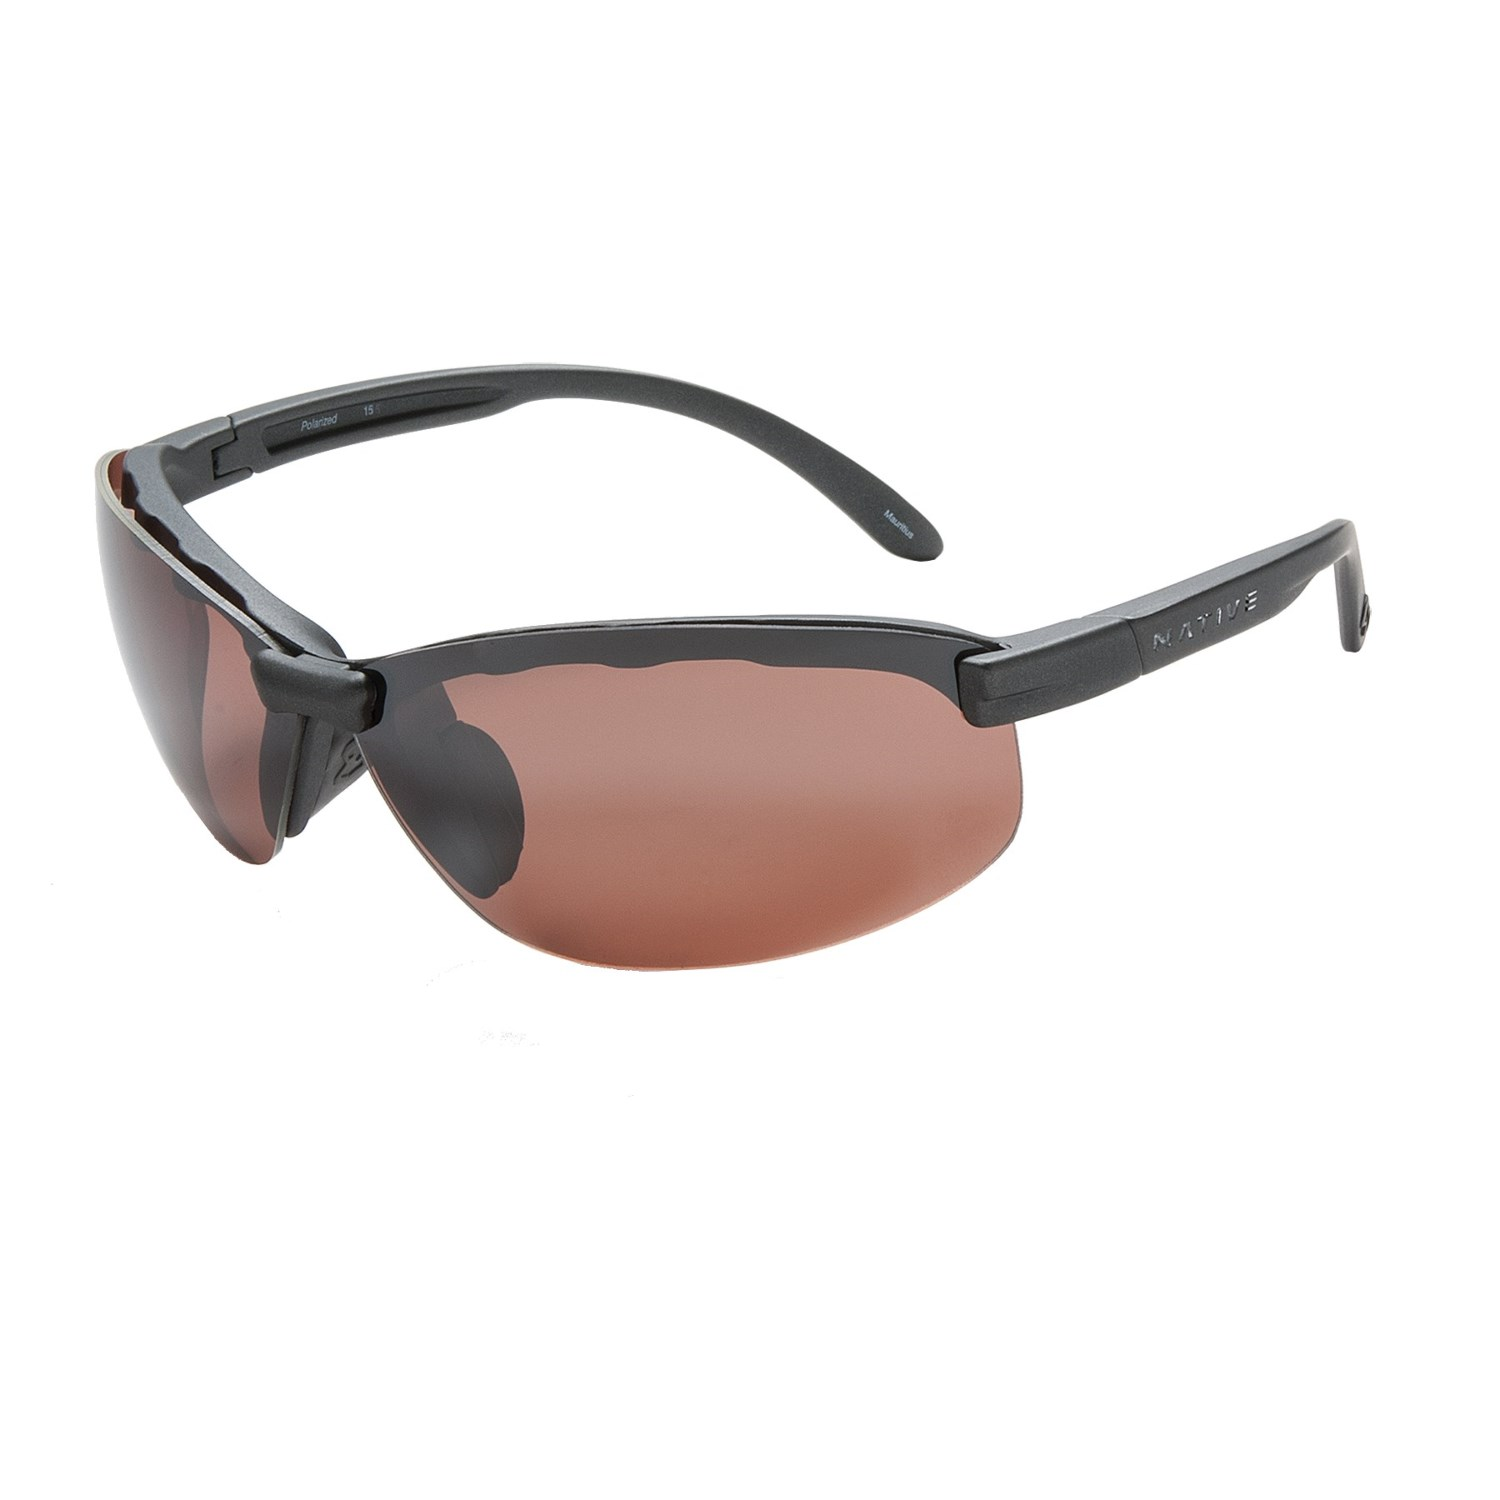 8aefc0a84eb7f12 Oakley Sunglasses Outlet